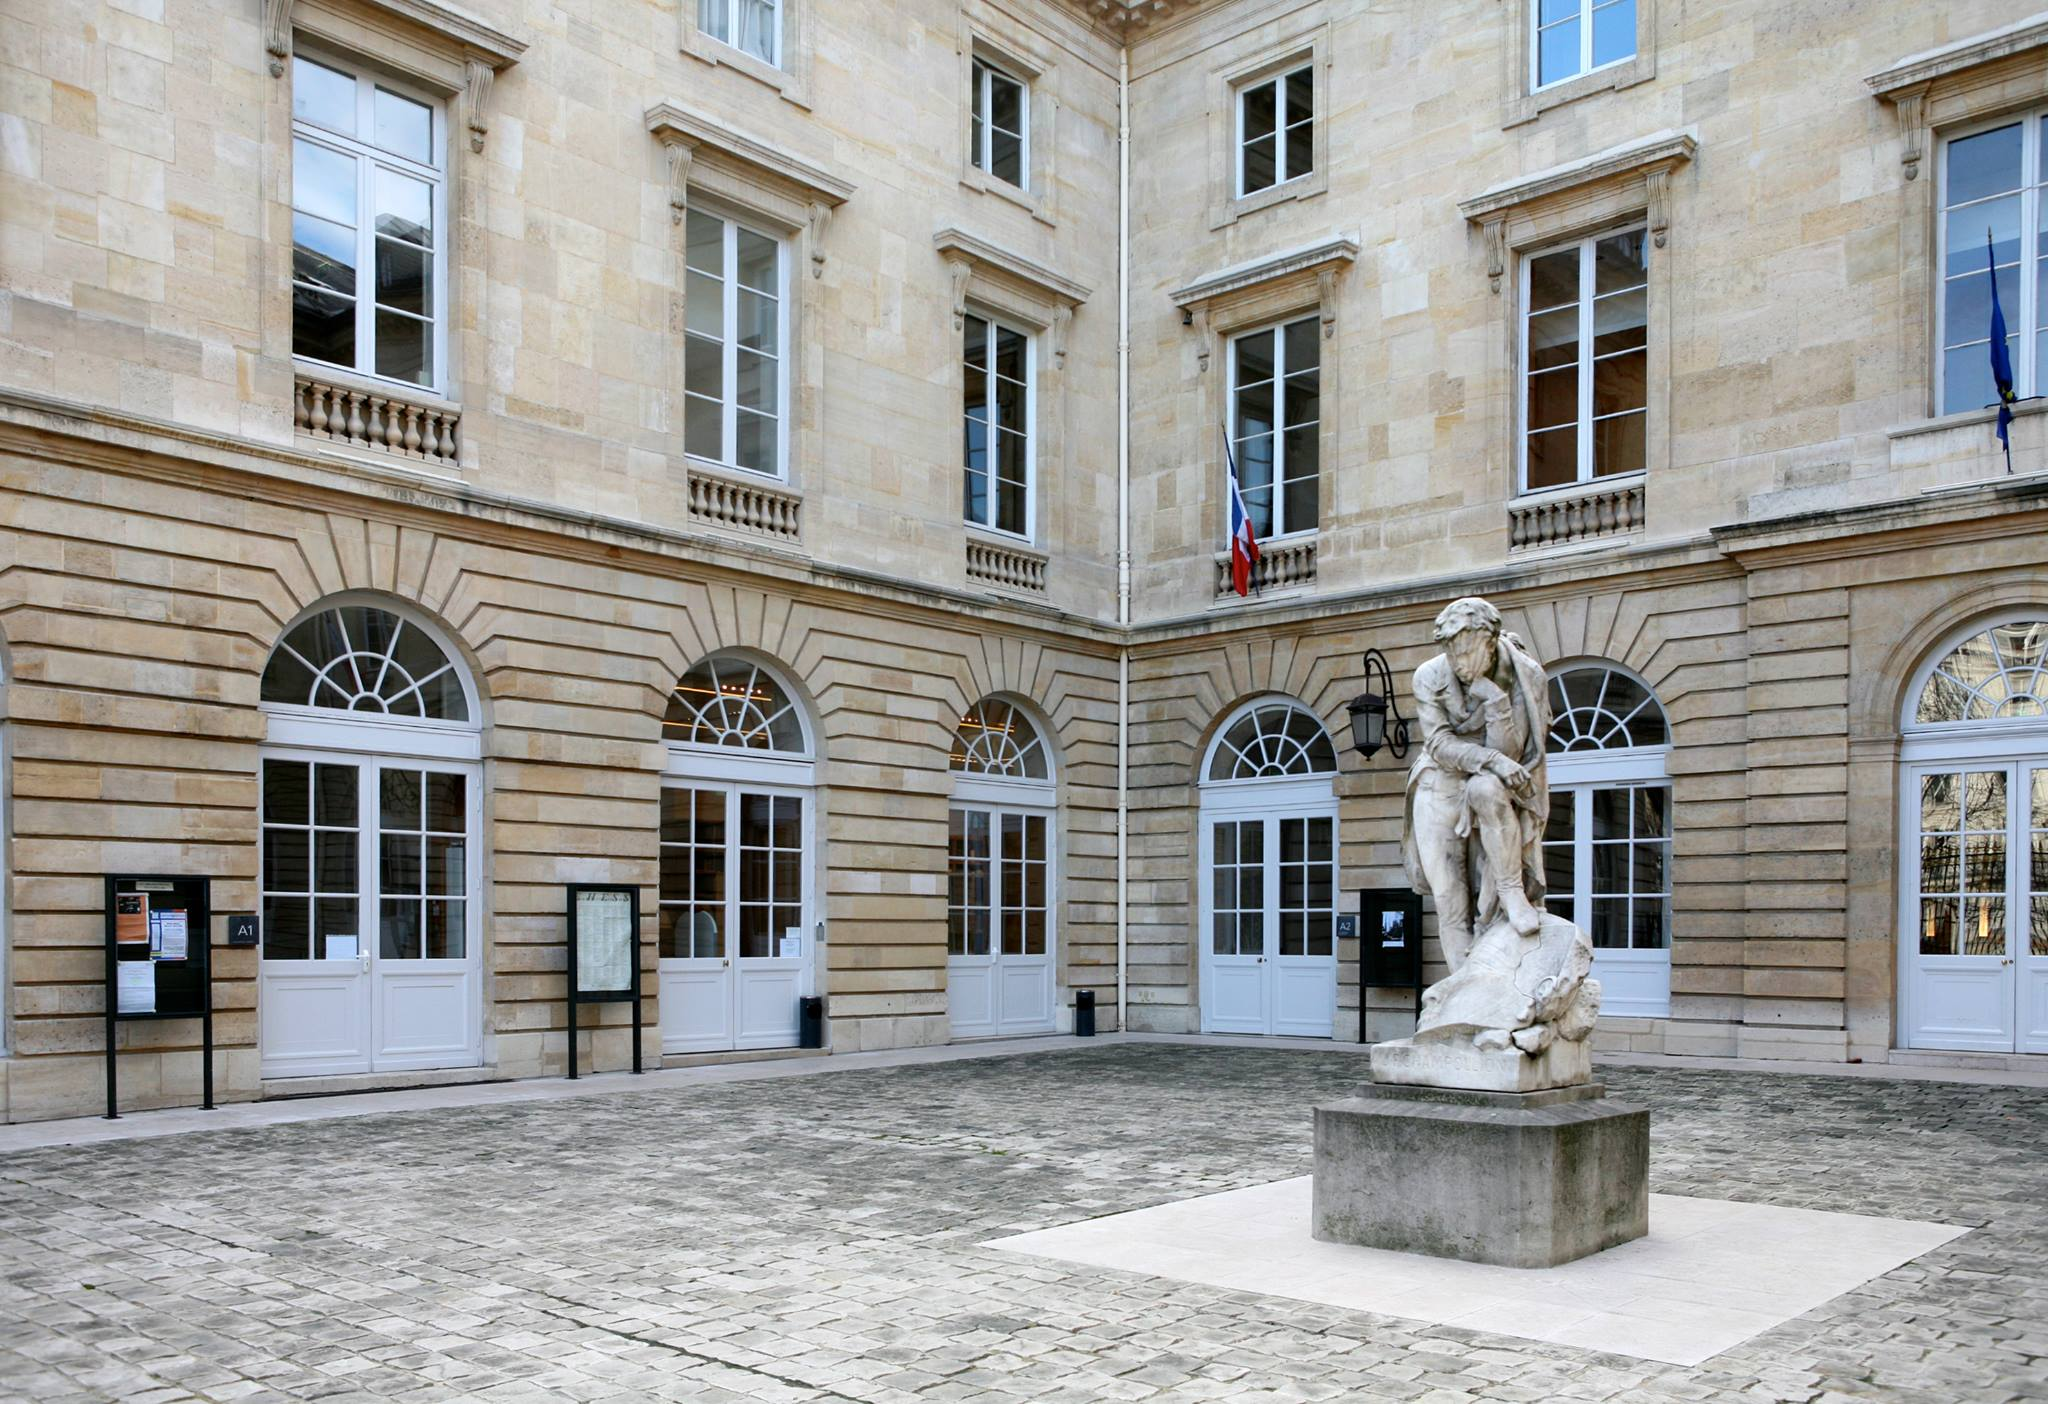 The Collège de France building in Paris. The building is stone and the window frames are white. There is a sculpture in the centre of the courtyard of a man with his foot resting on a head, his elbow resting on his knee, and his chin resting on his hand. There is a French flag hanging from one of the windows.